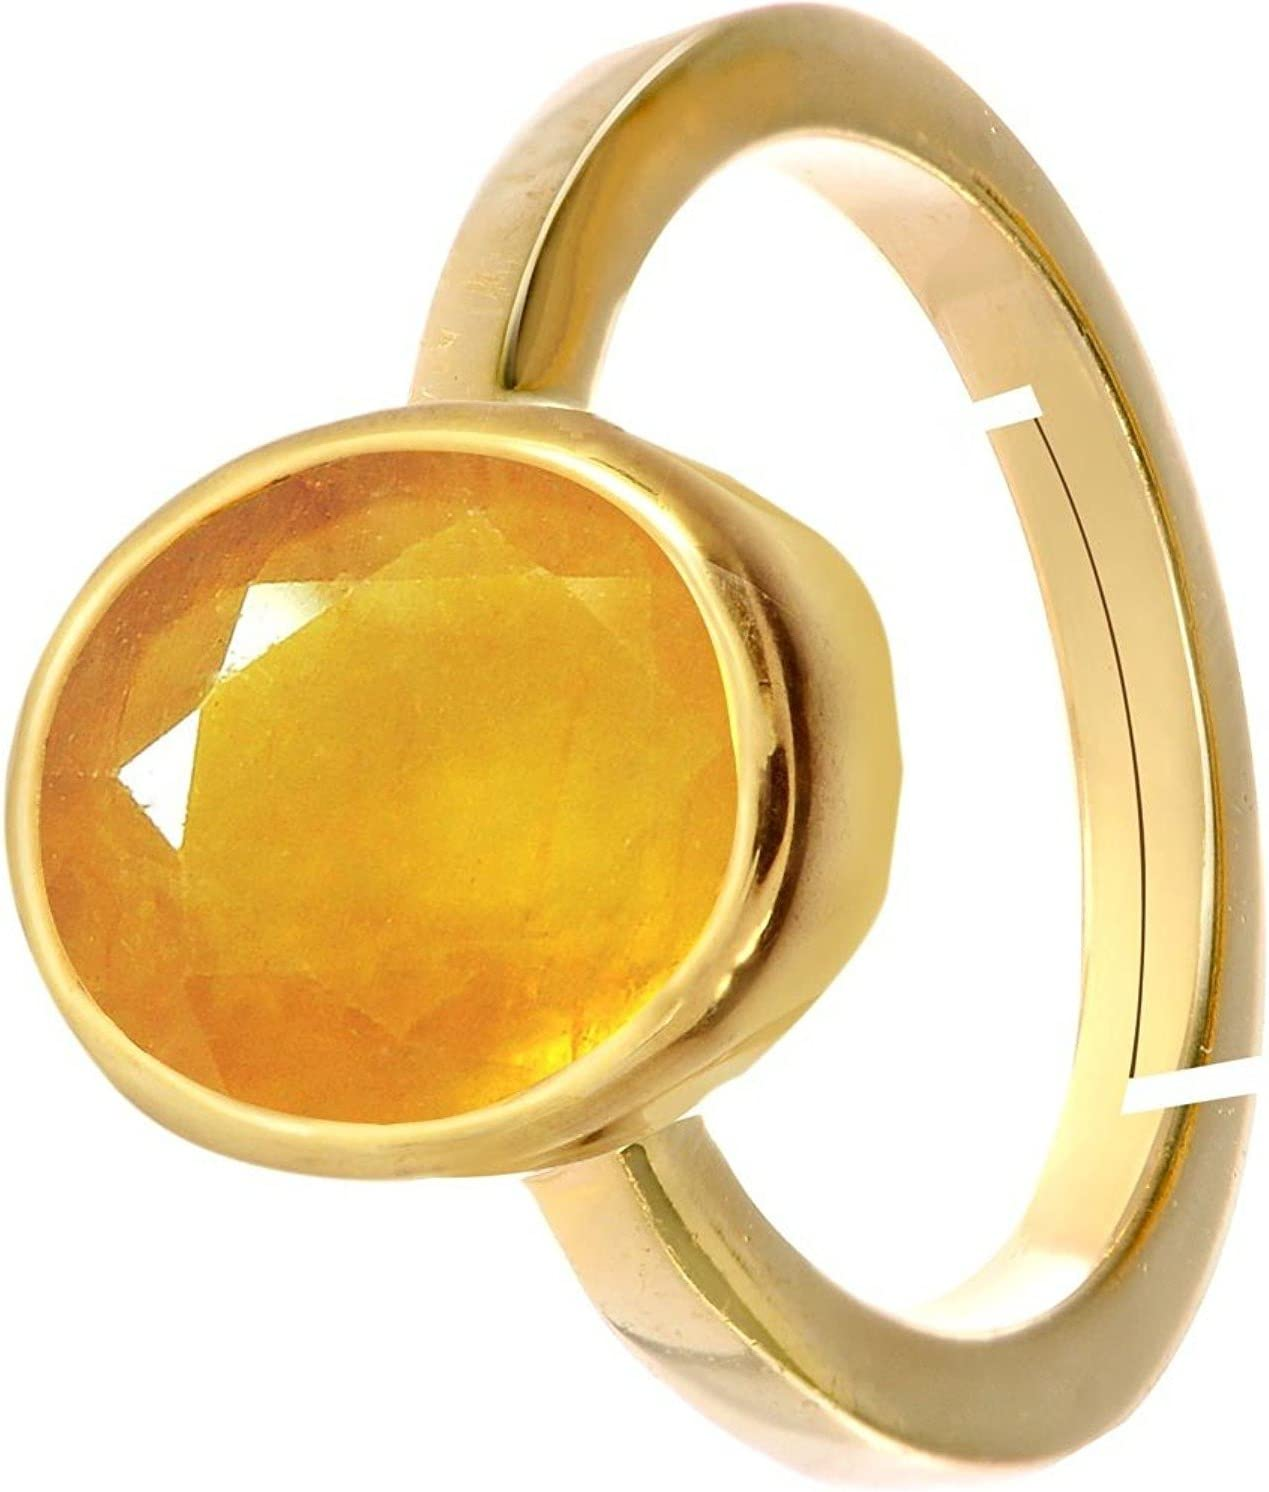 Yellow Sapphire//Pukhraj 8.4cts or 9.25ratti Stone Panchdhatu Adjustable Ring for Men